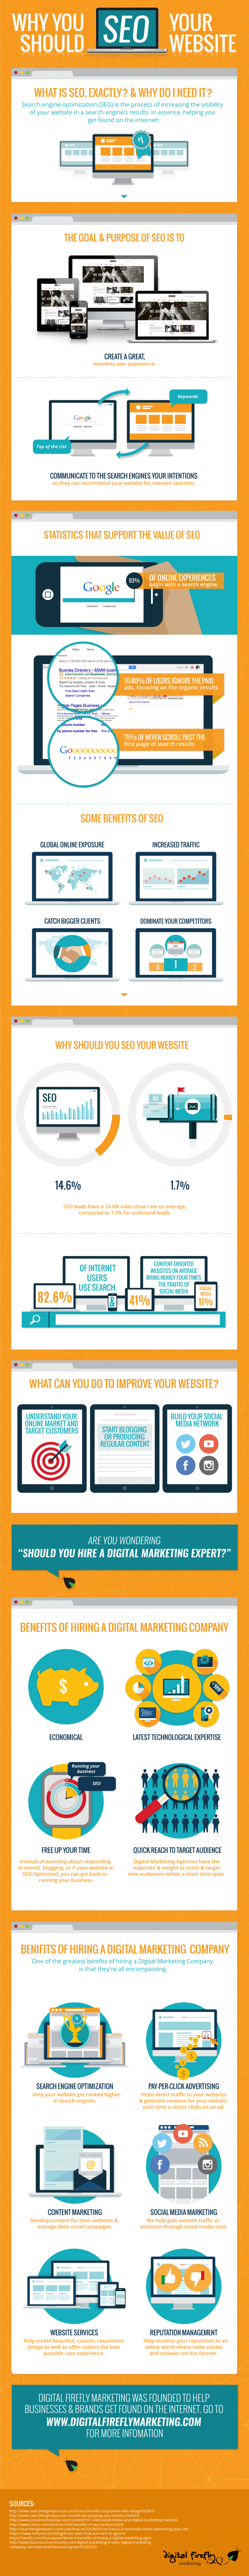 Why should you SEO your site? Infographic